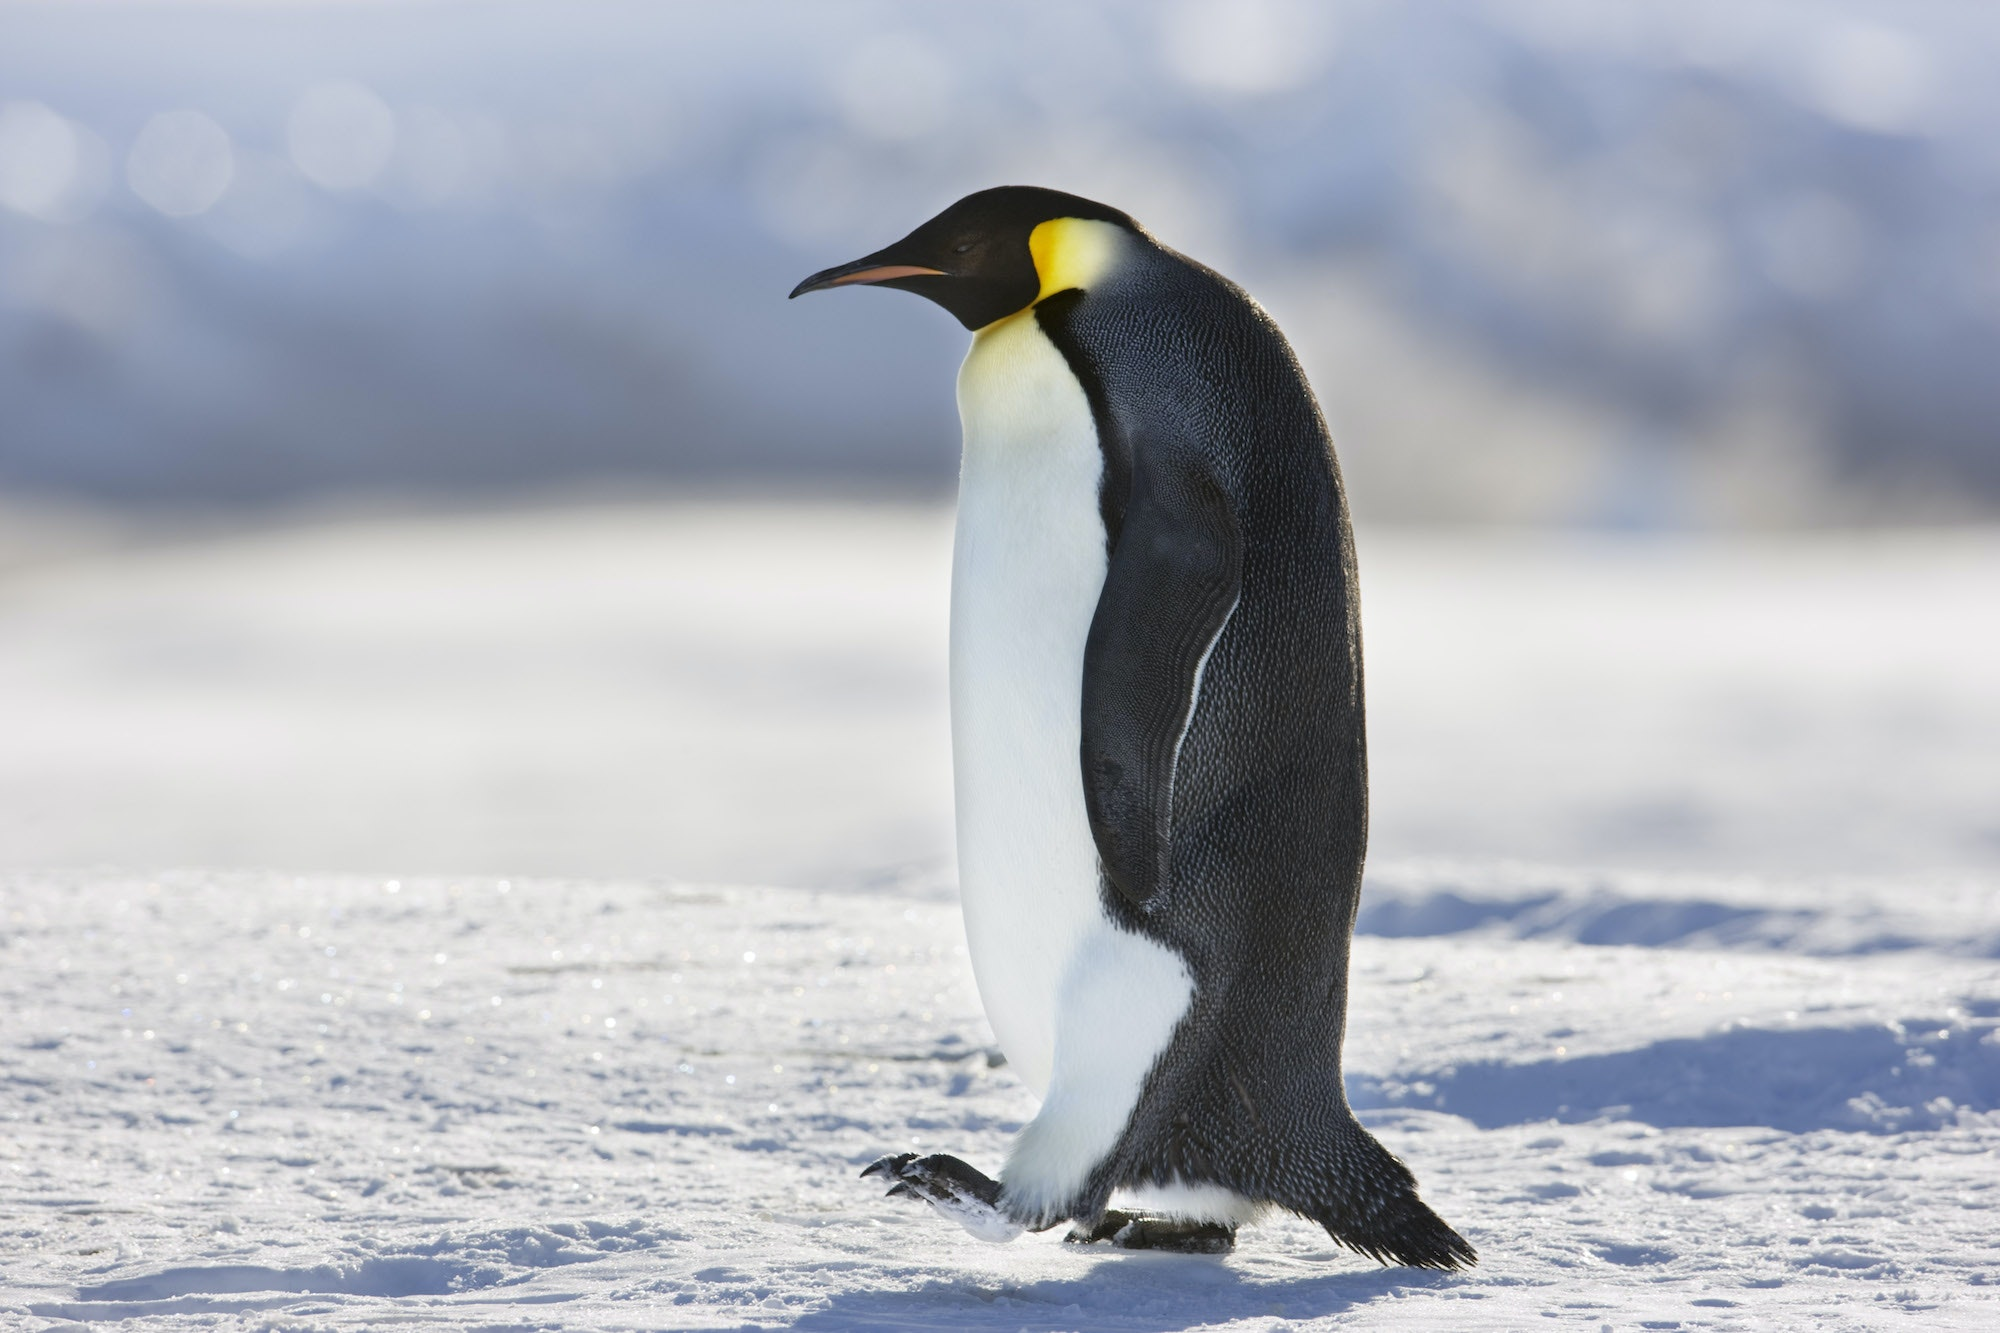 Emperor penguins have special adaptations like large stores of insulating body fat and several layers of scale-like feathers that protect them from icy winds.